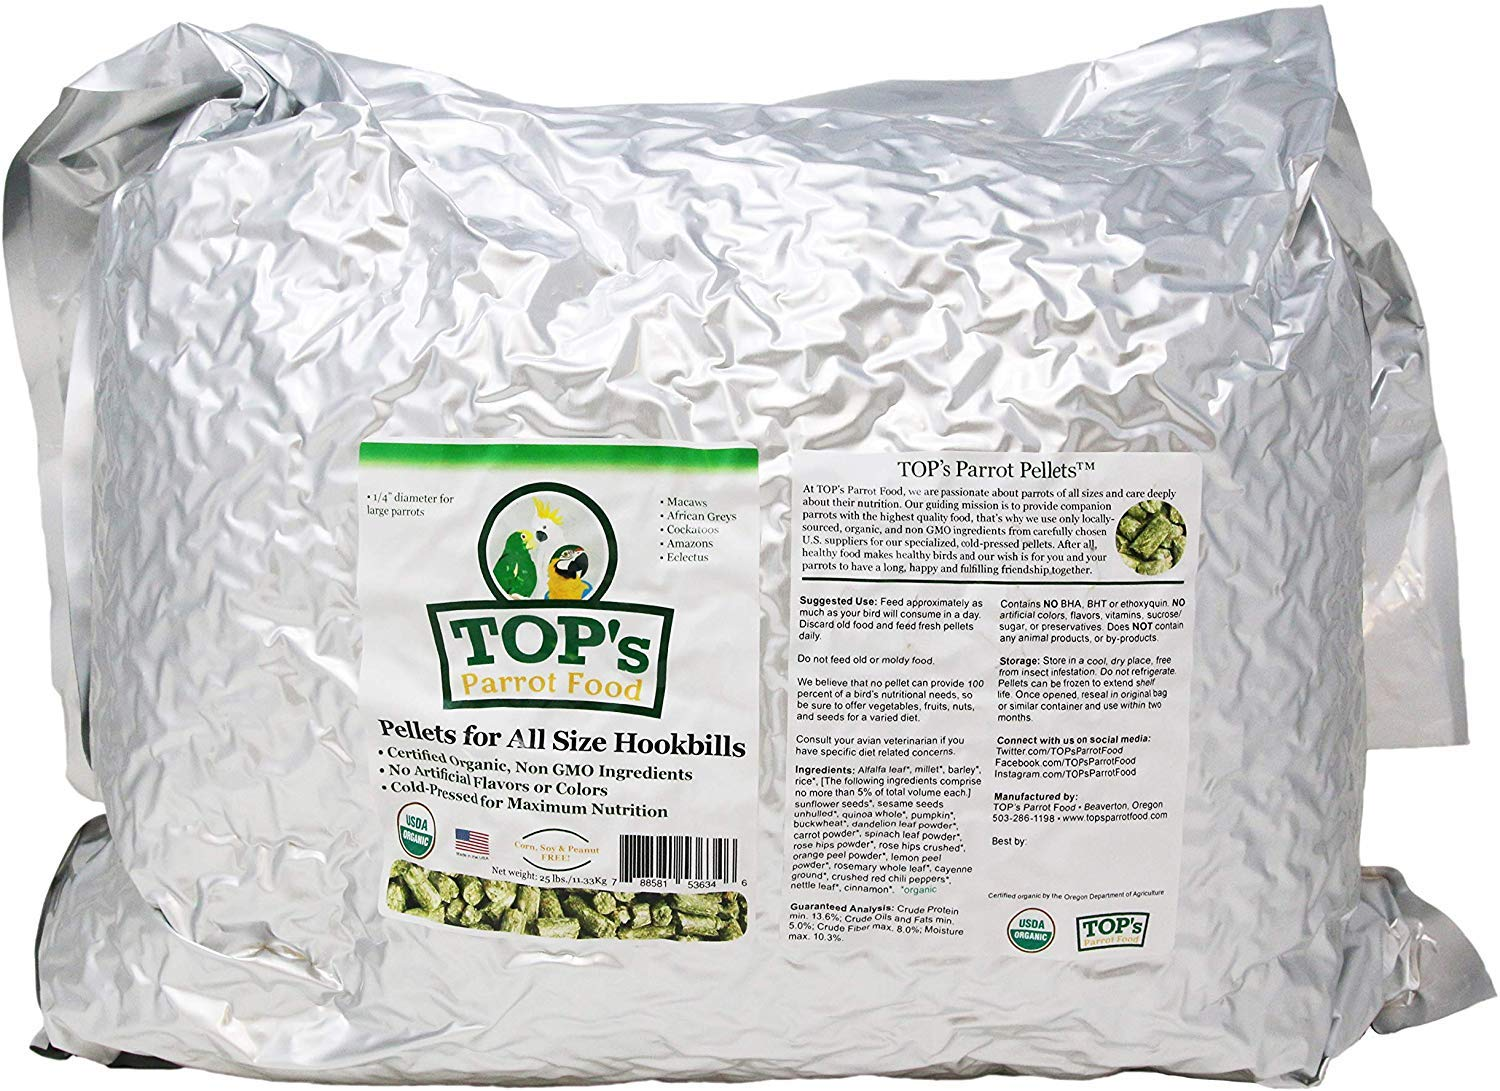 TOP's Parrot Food Pellets Hookbills, Small, Medium and Large Parrots - USDA Organic Certified - 25 lb / 11.33 kg by TOP's Parrot Food